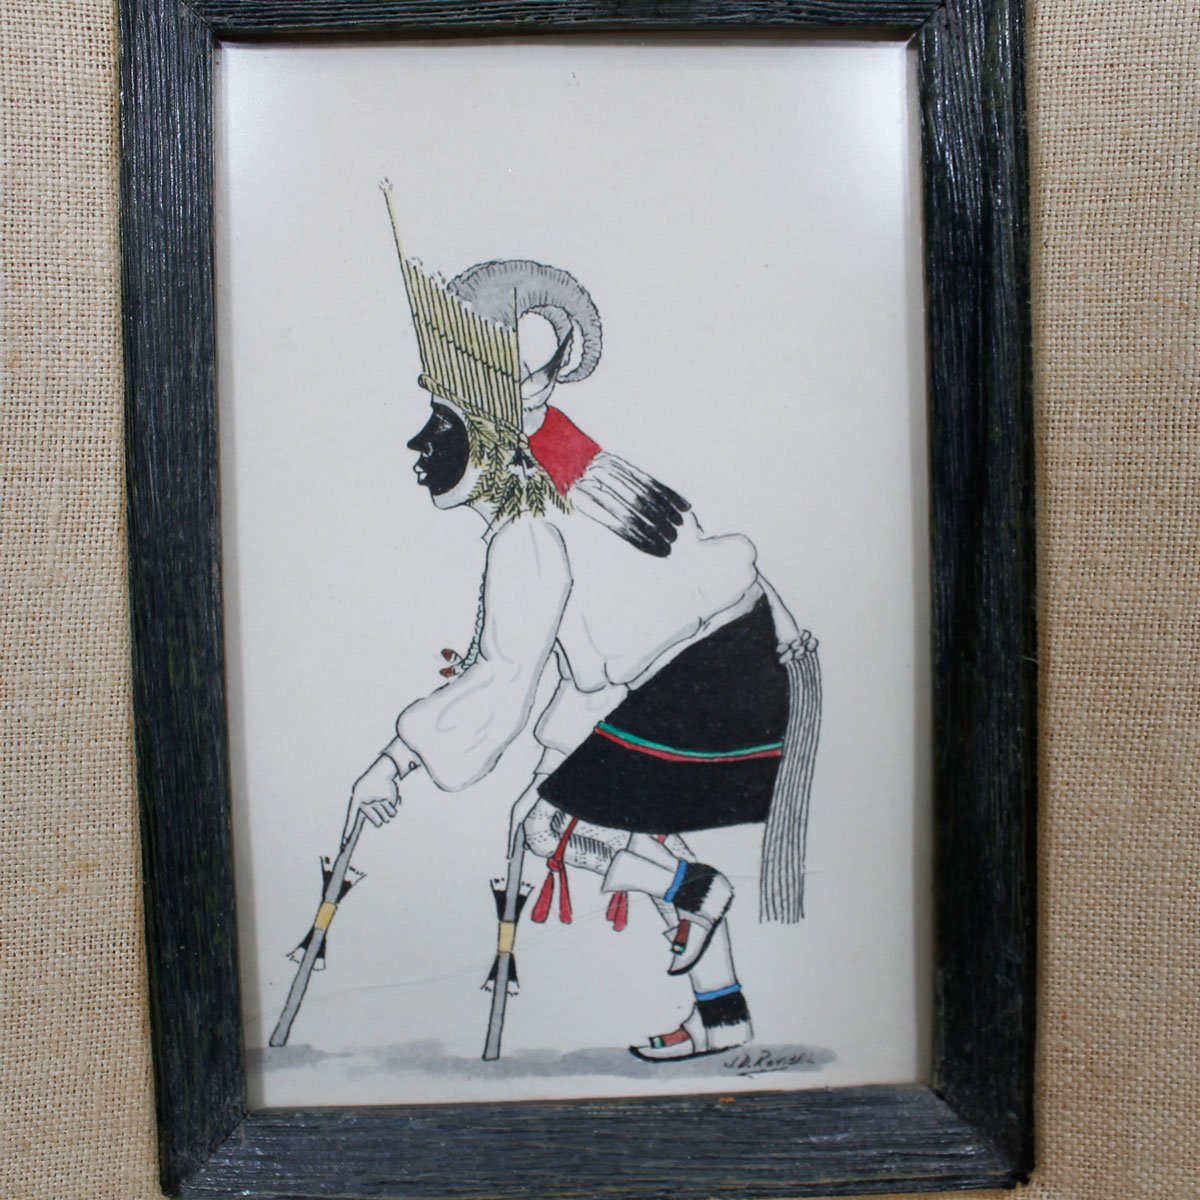 Vintage Native Artwork by J. D. Roybal